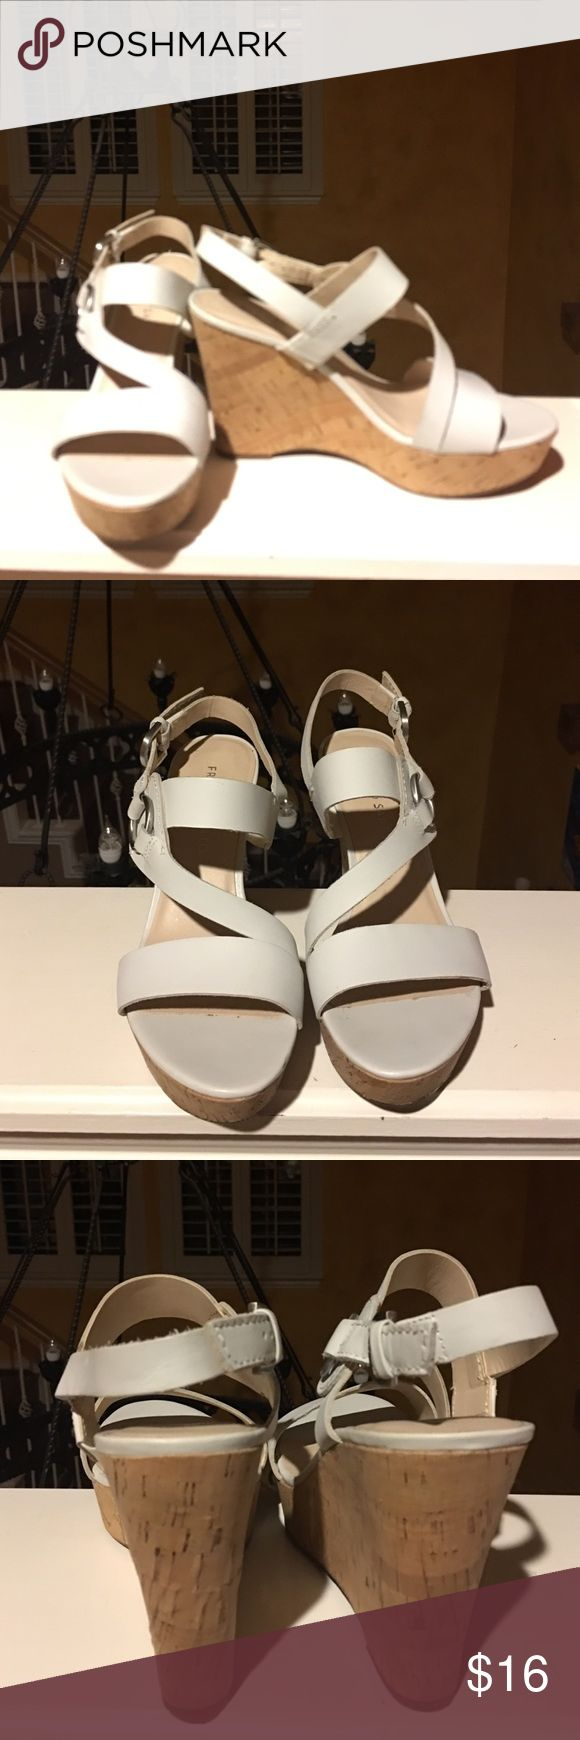 """Franco Sarto white cork wedges 4"""" cork wedge. White straps with silver hardware. Worn once. Excellent condition. Franco Sarto Shoes Wedges"""